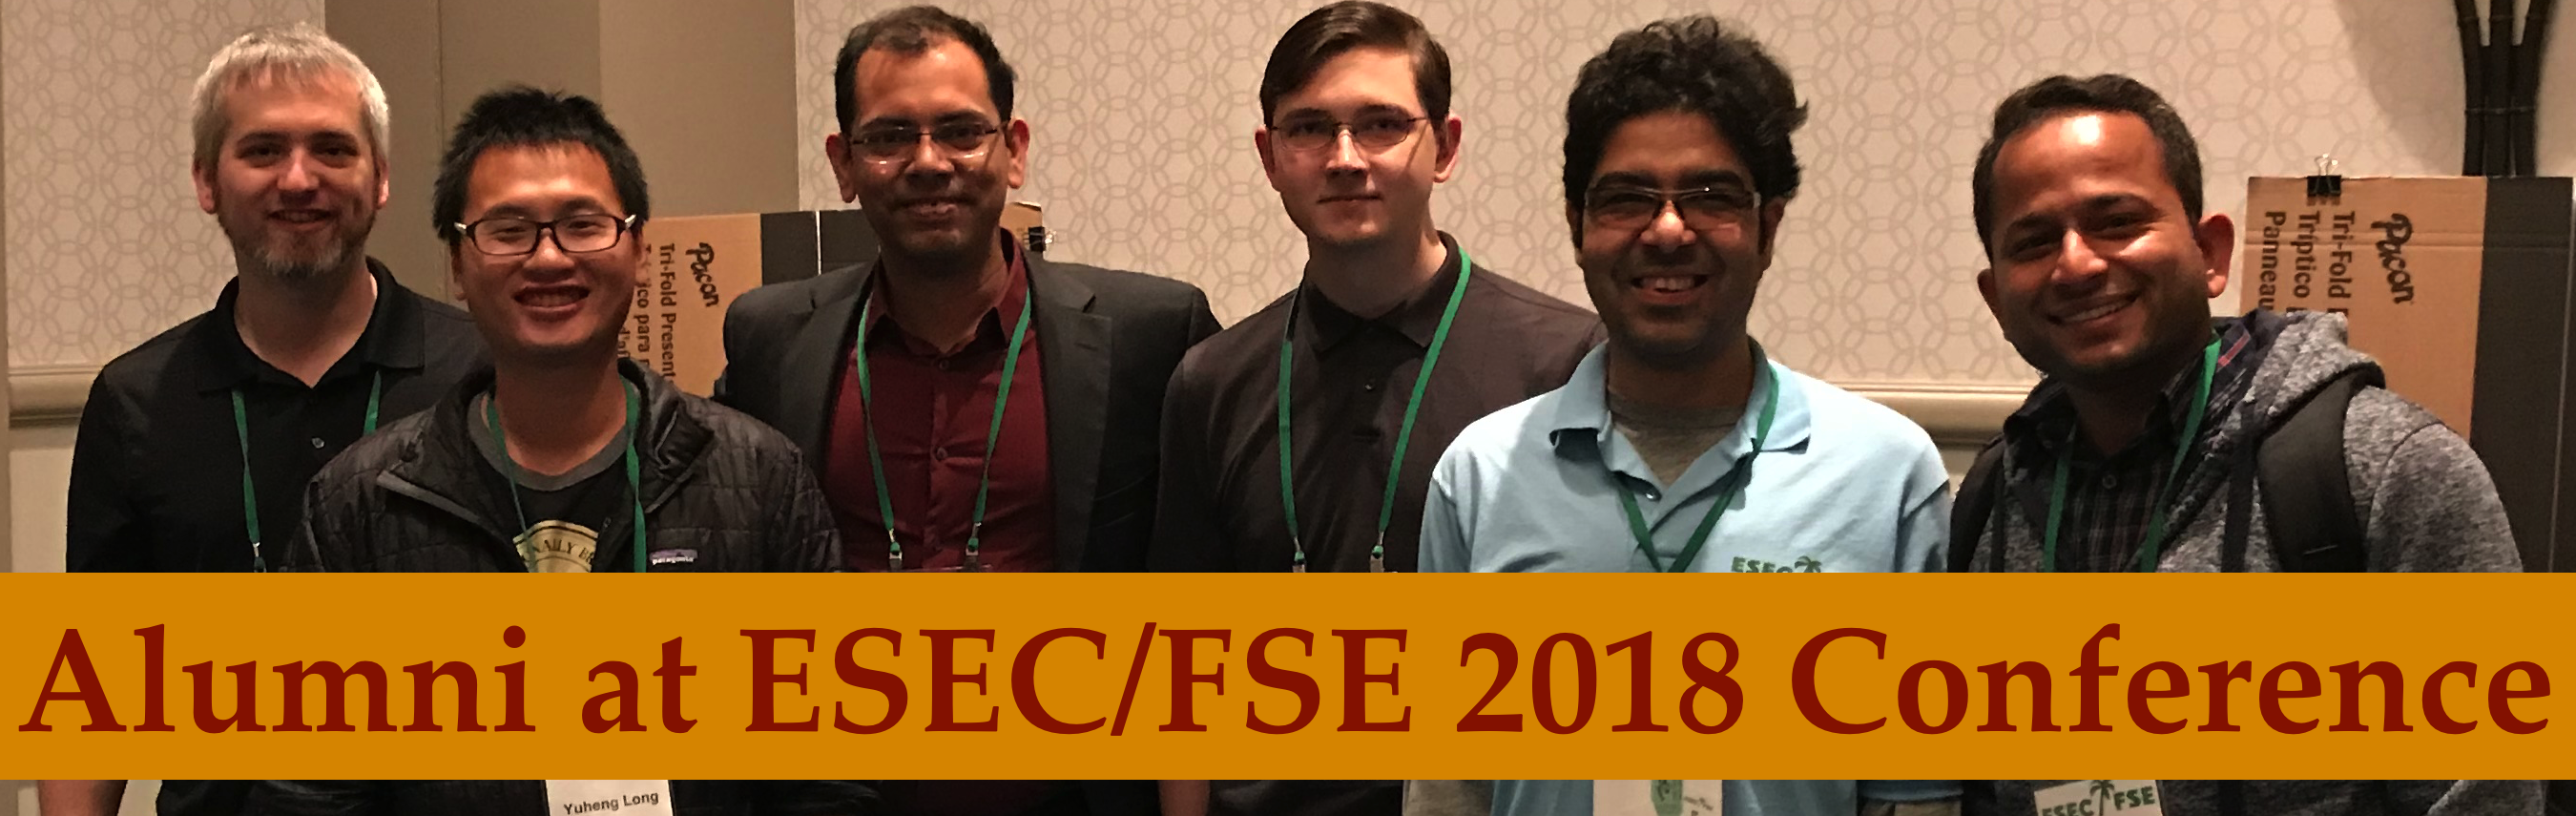 Alumni meet at ESEC/FSE 2018